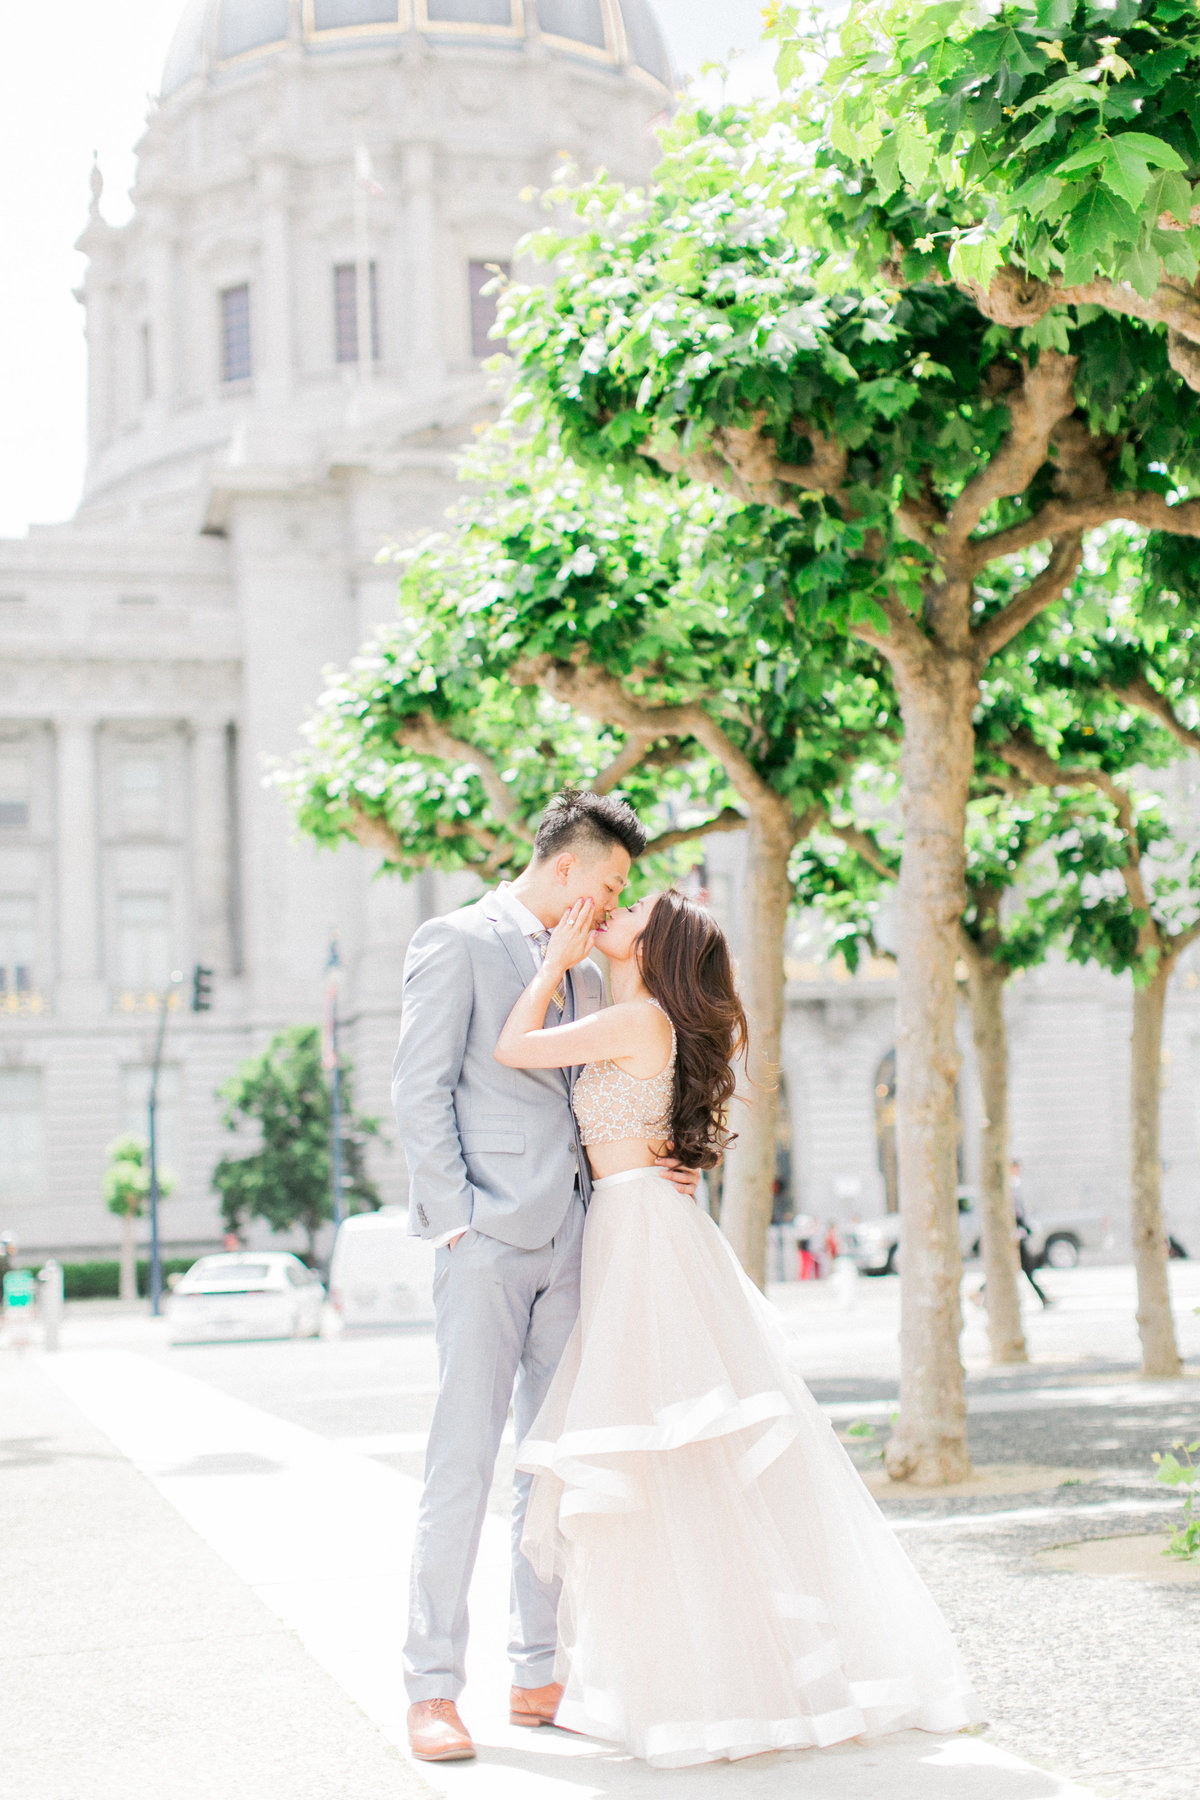 Evonne and Darren Weddings San Francisco